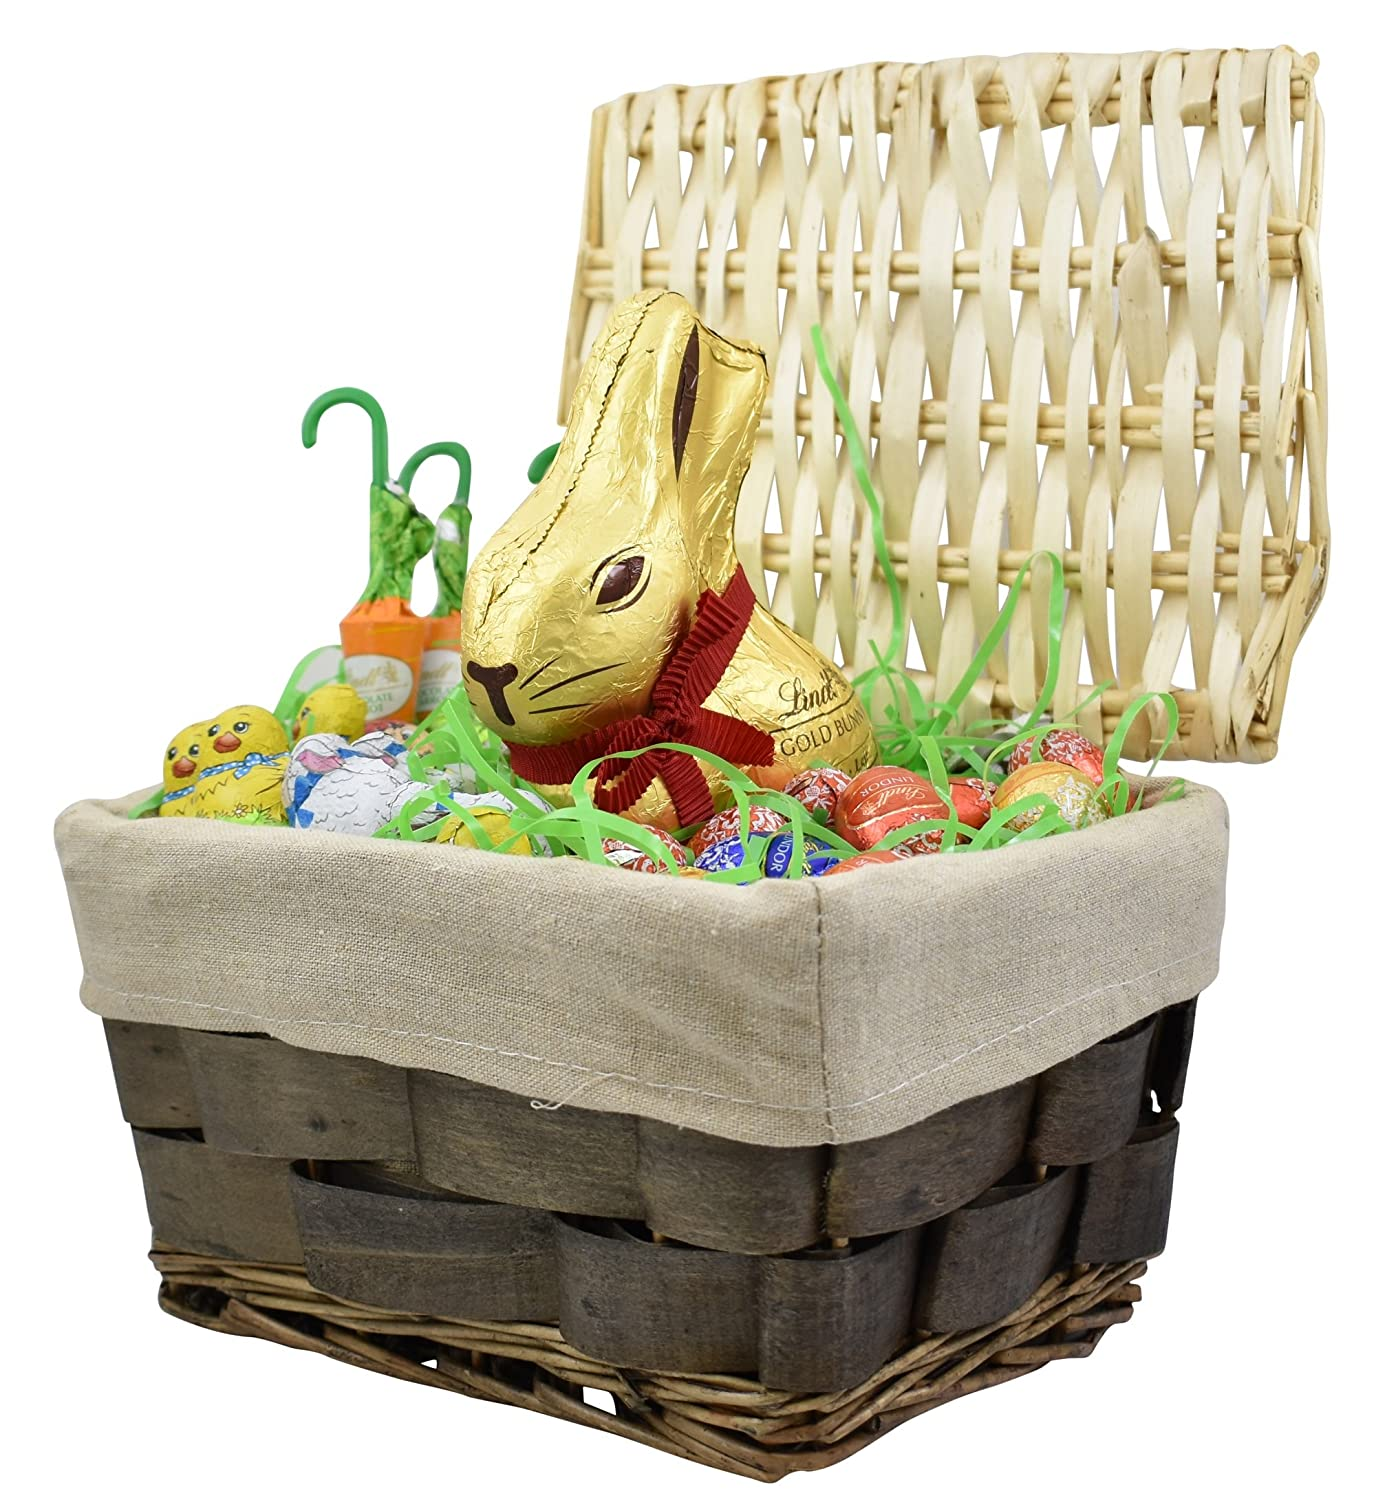 Amazon gift universe lindt easter gift basket lindt amazon gift universe lindt easter gift basket lindt easter gold bunny 7 ounce and lindt easter friends 35 pc grocery gourmet food negle Gallery